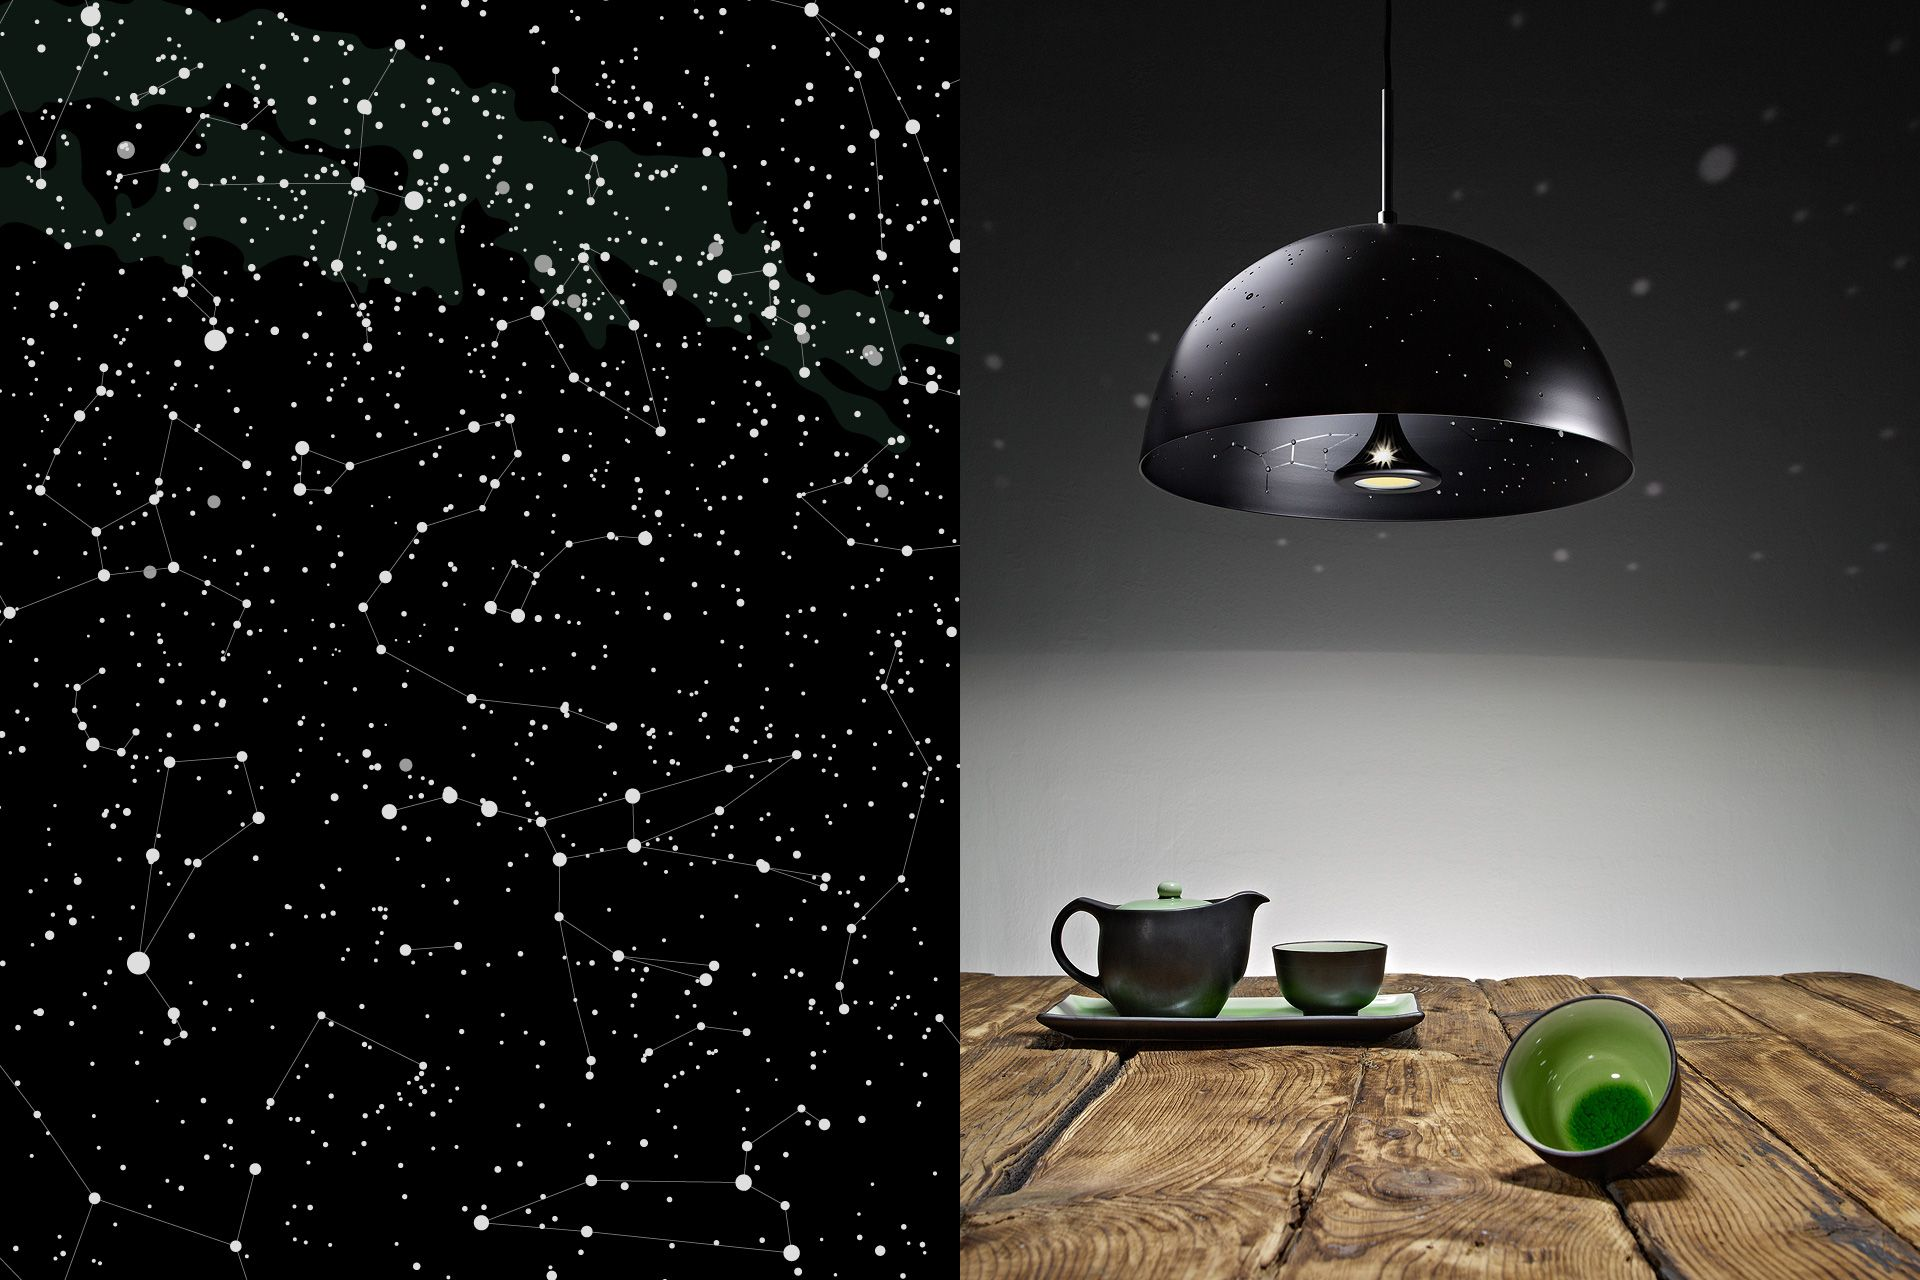 Starry light die lampe die einen sternenhimmel erzeugt starry constellations projected onto the walls and ceiling with anagraphics new starry light aloadofball Image collections